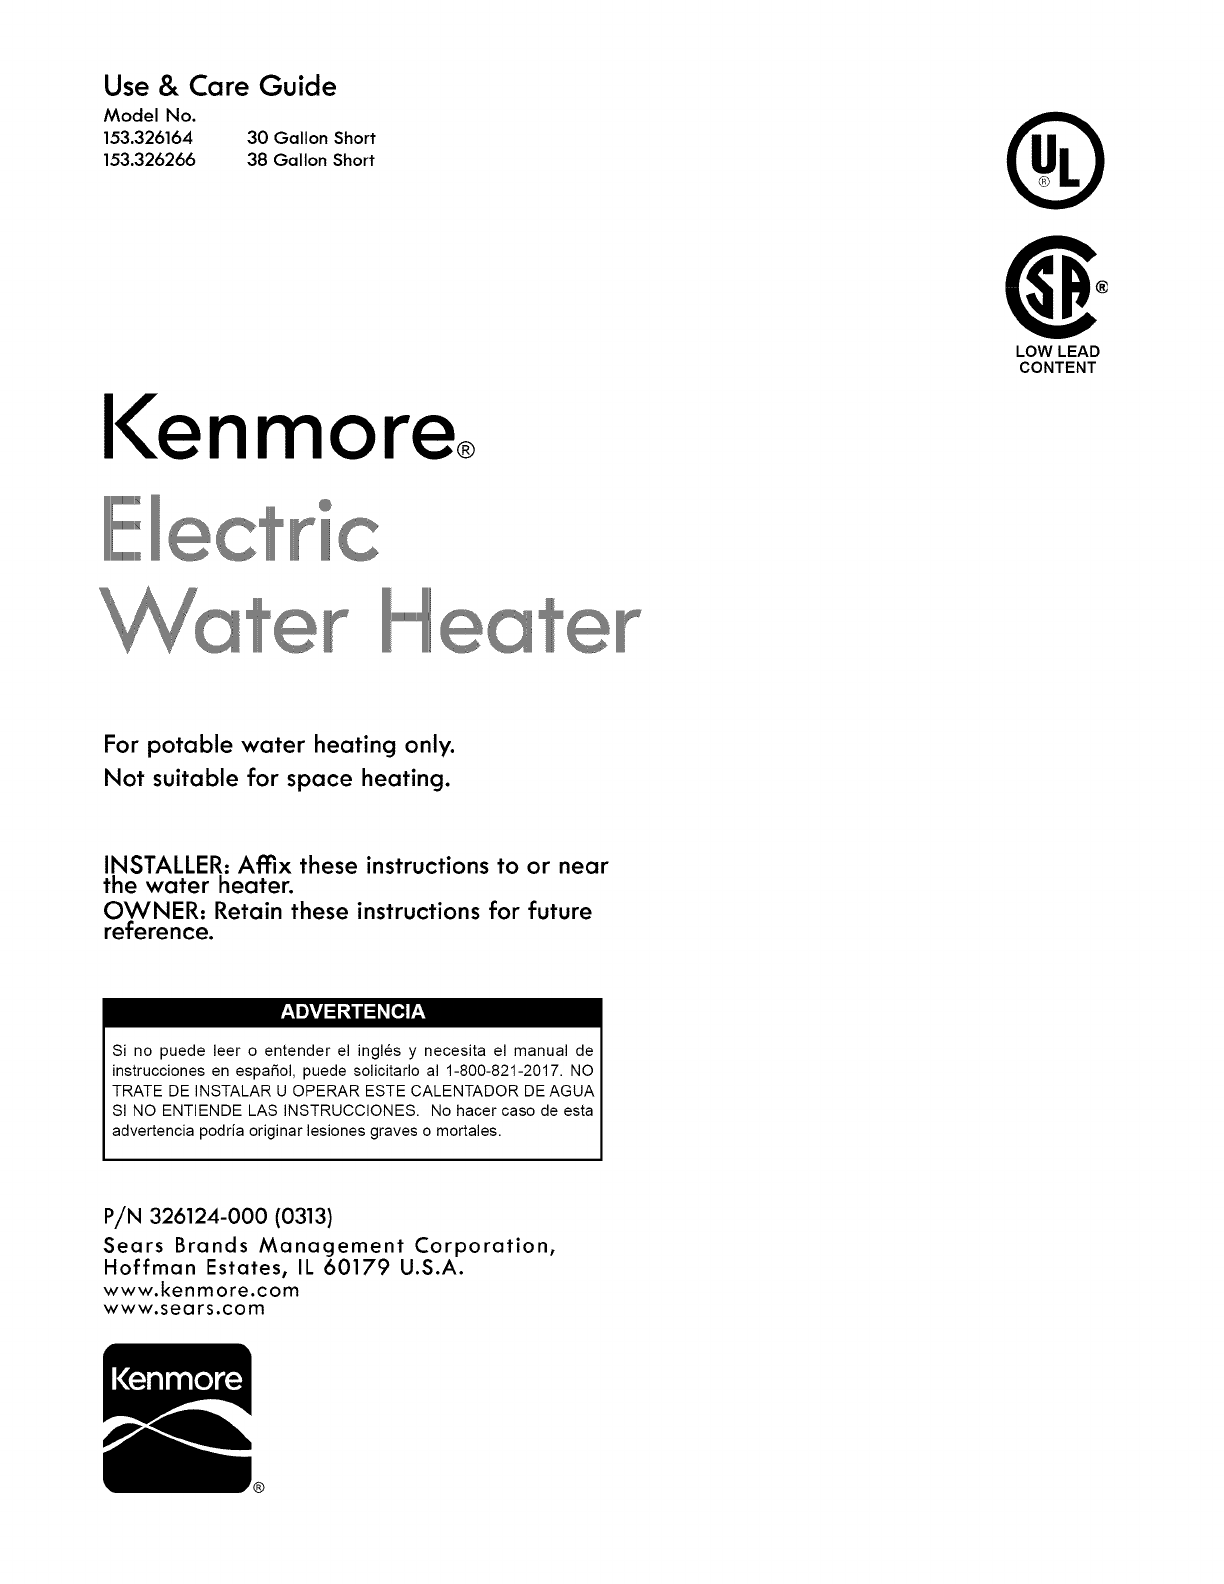 Kenmore 153326164 User Manual WATER HEATER Manuals And ... on